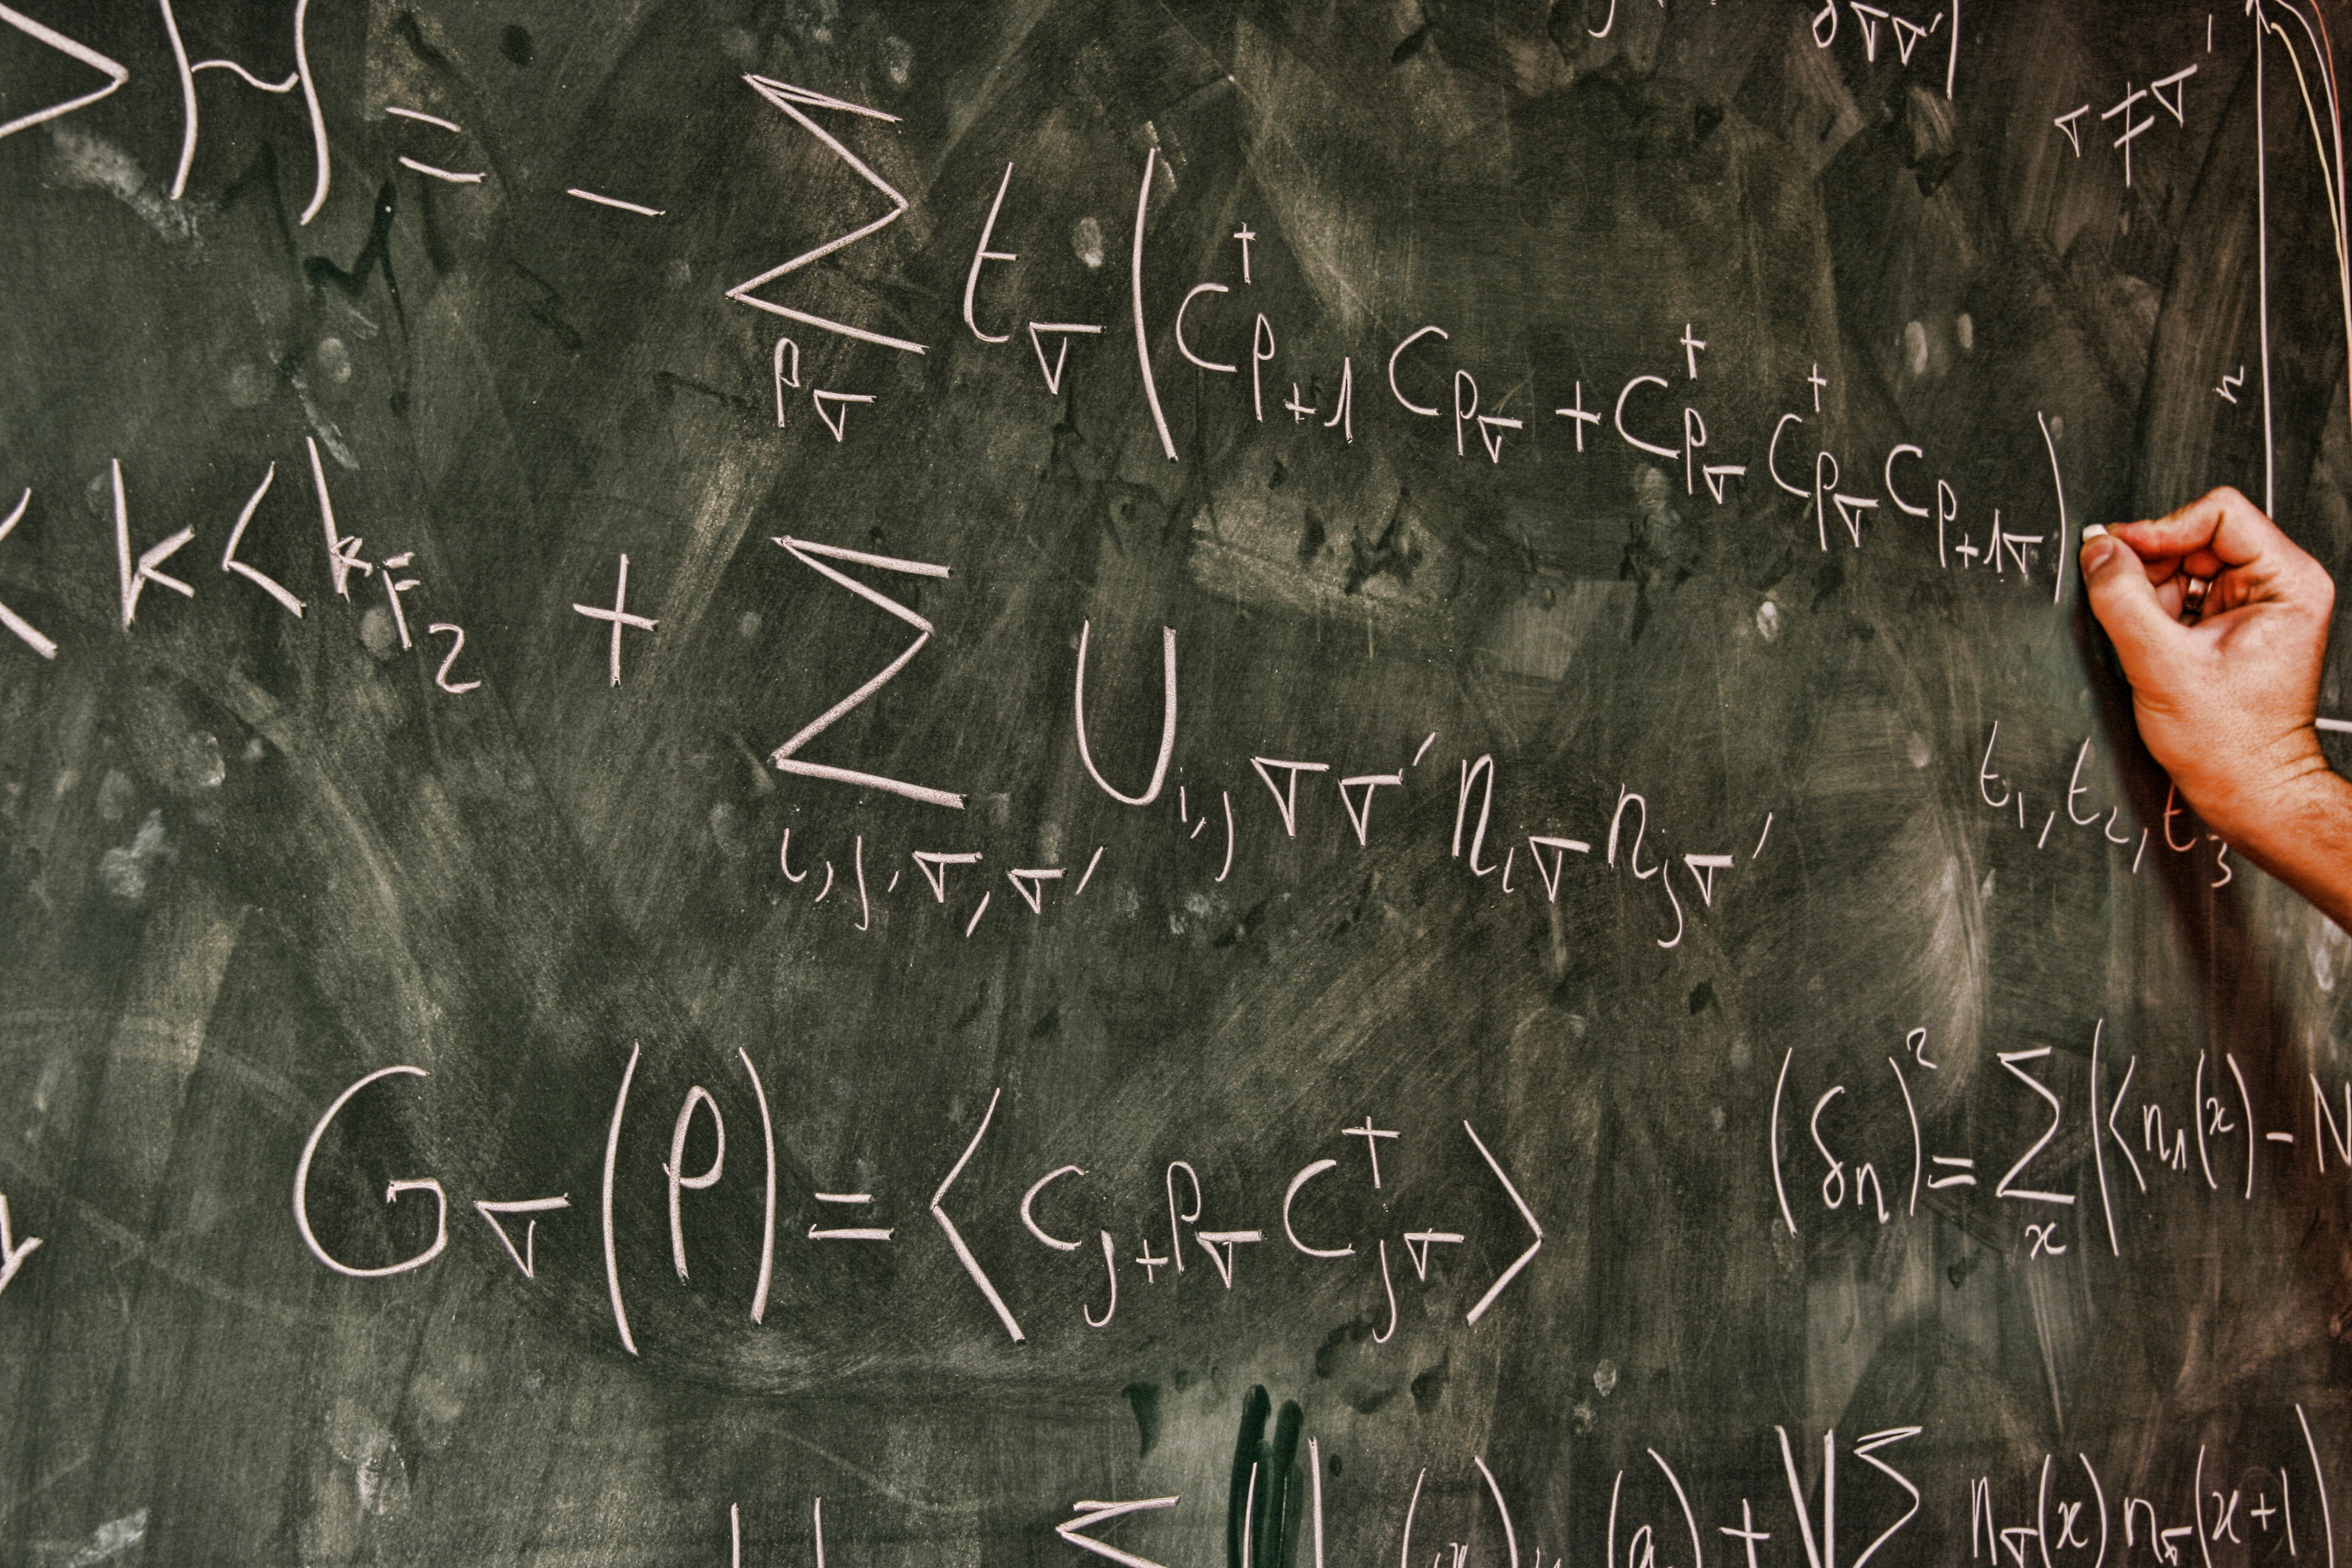 The weird science of quantum computing, communications and encryption